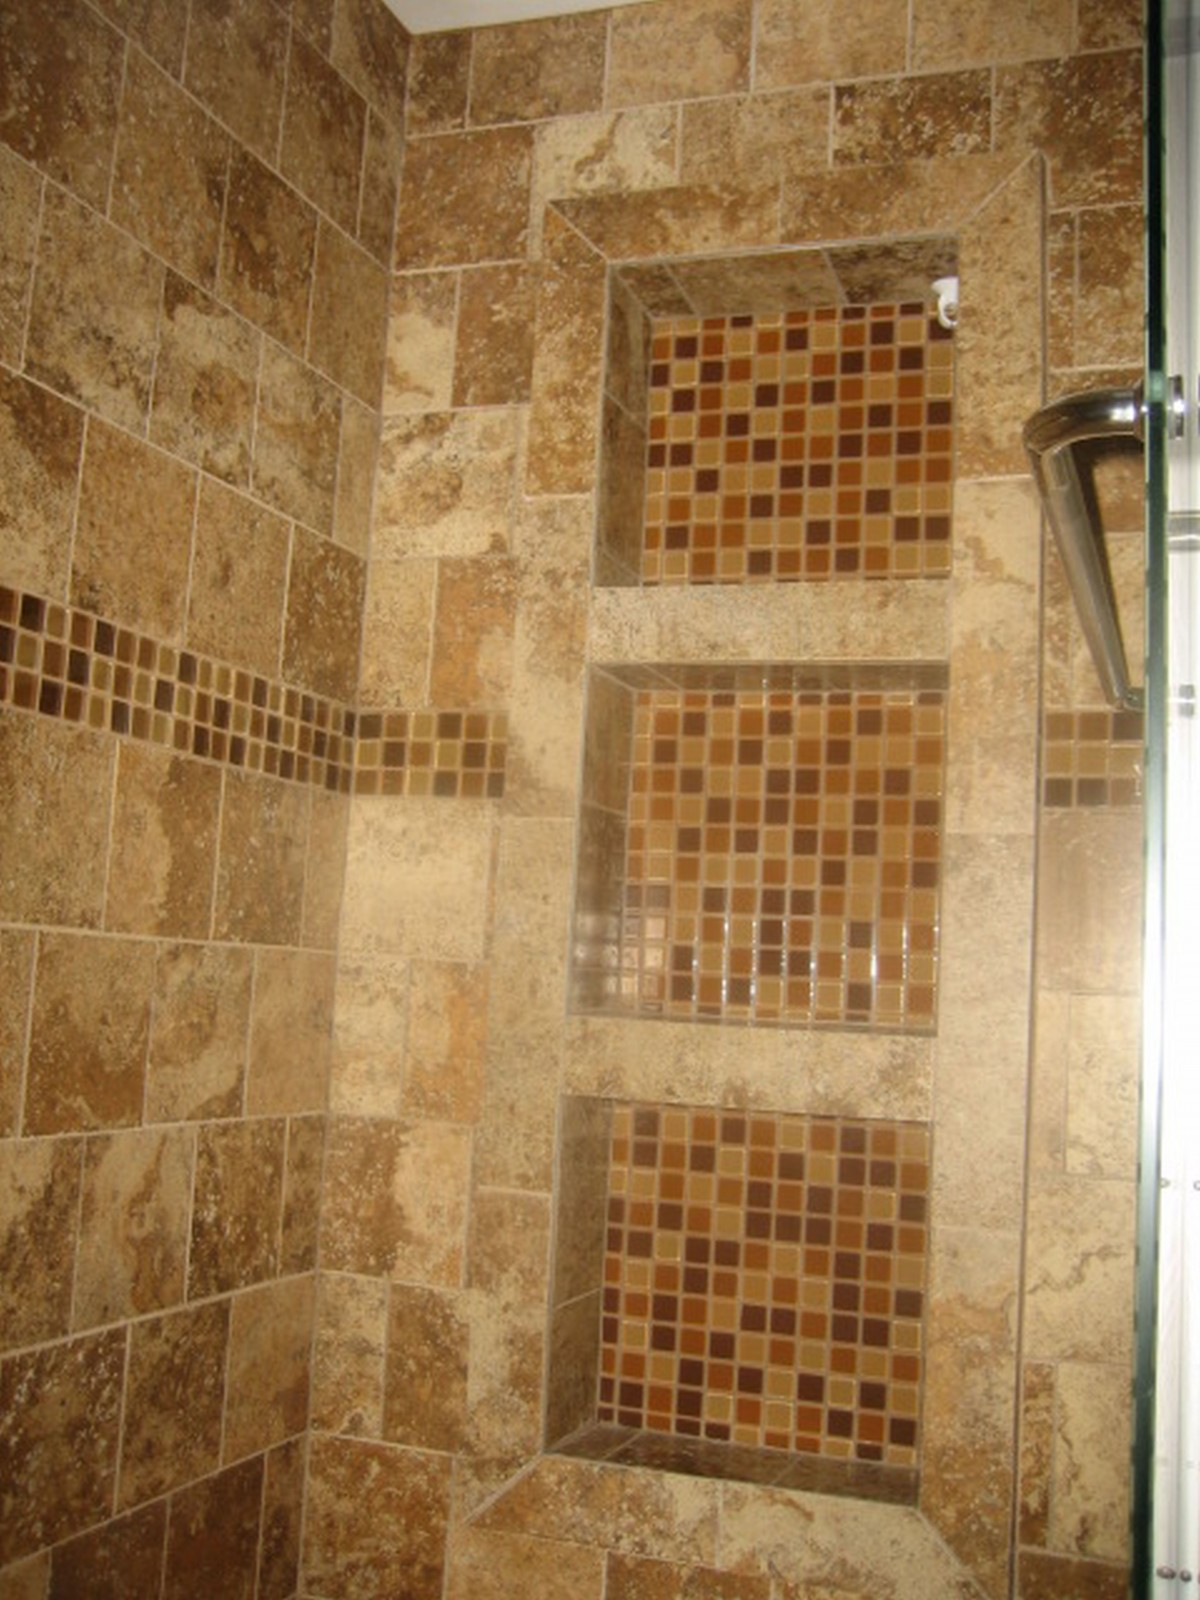 bathroom ceramic wall tile ideas 30 pictures of bathroom wall tile 12x12 22039